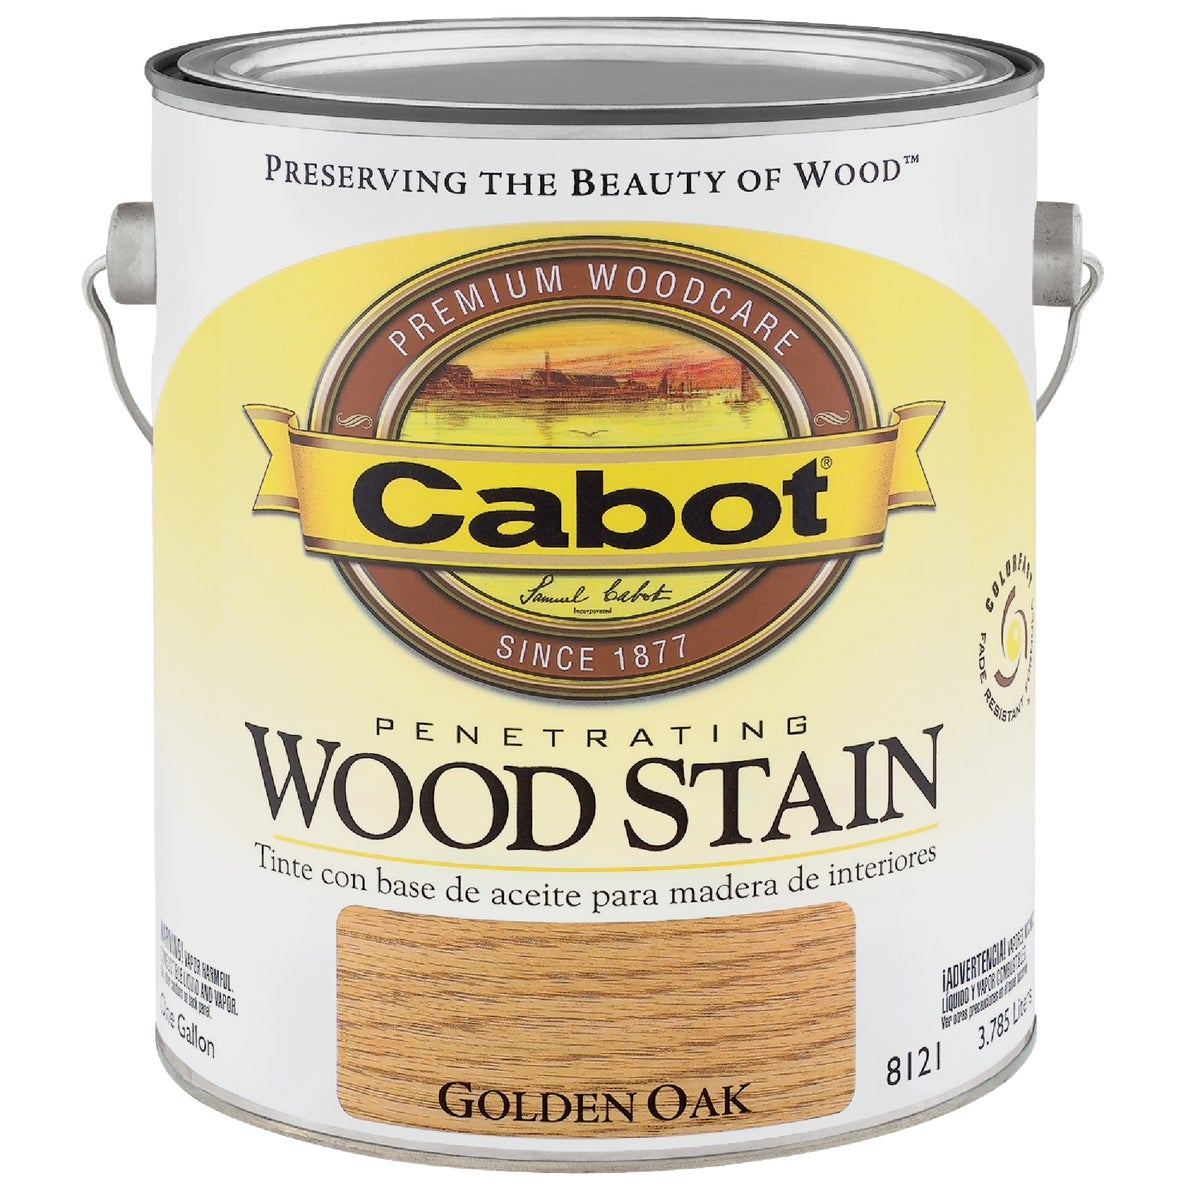 INT GOLDN OAK WOOD STAIN - 144.0008121.007 by Valspar Corp